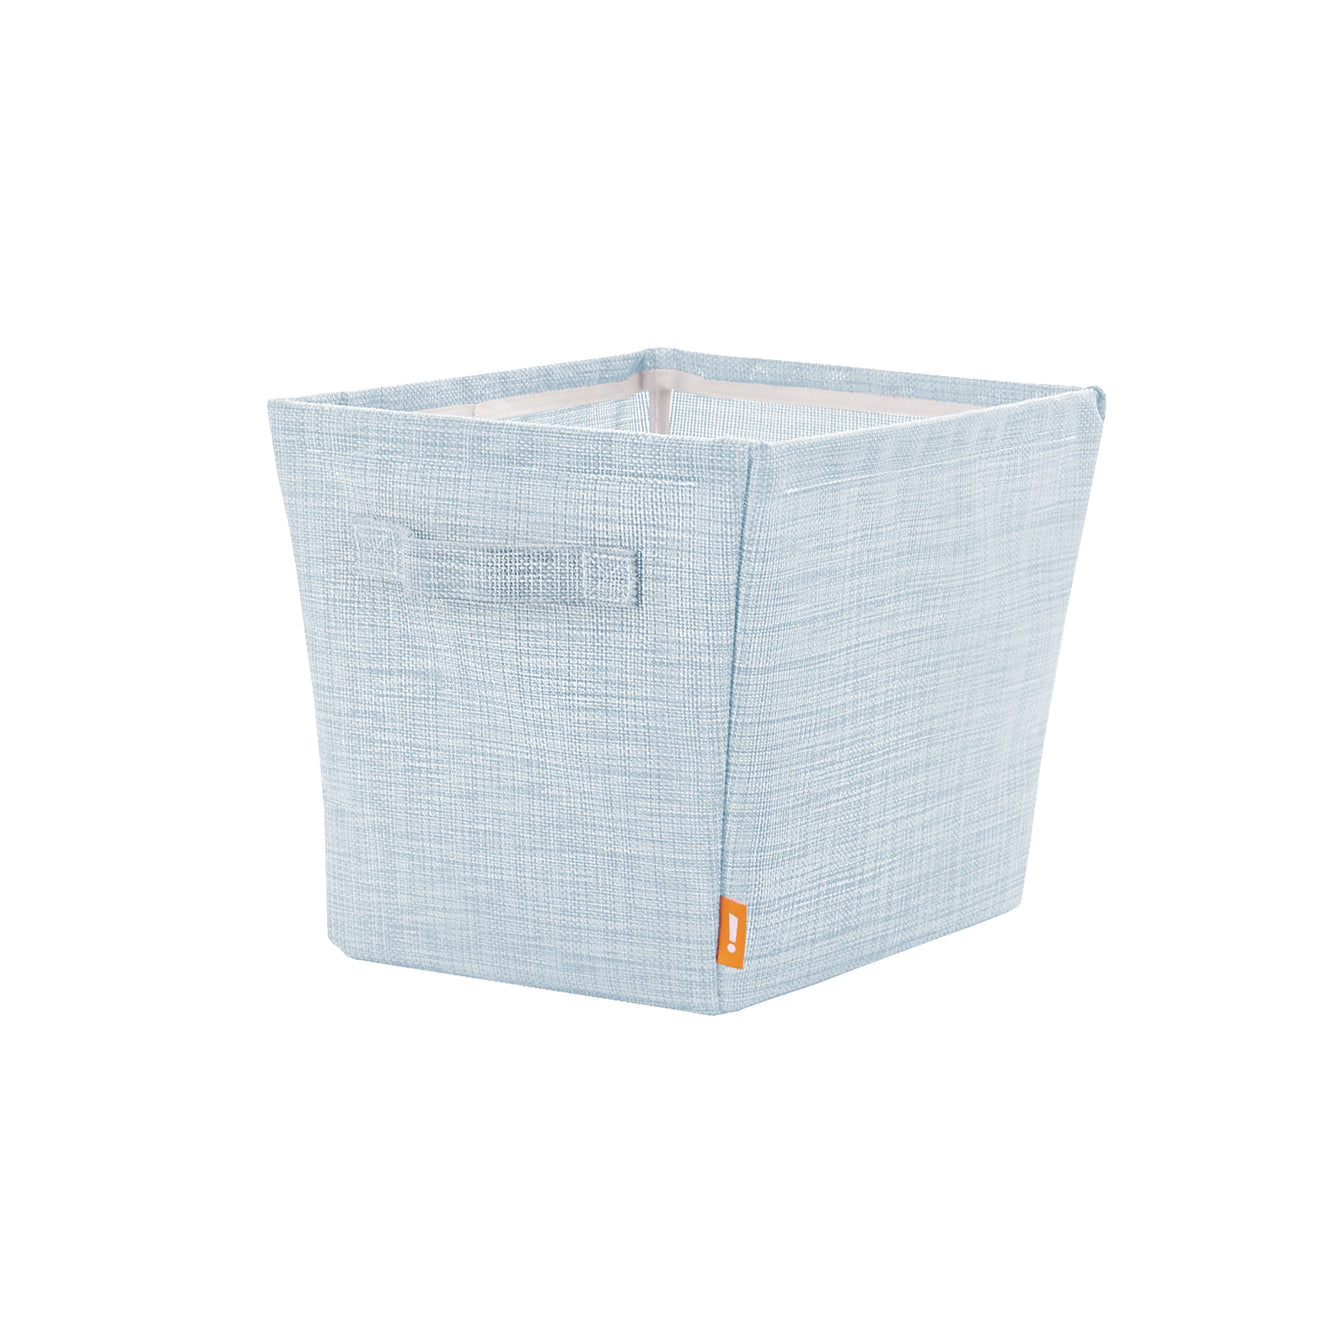 Set of 4 - Small Woven Storage Bin